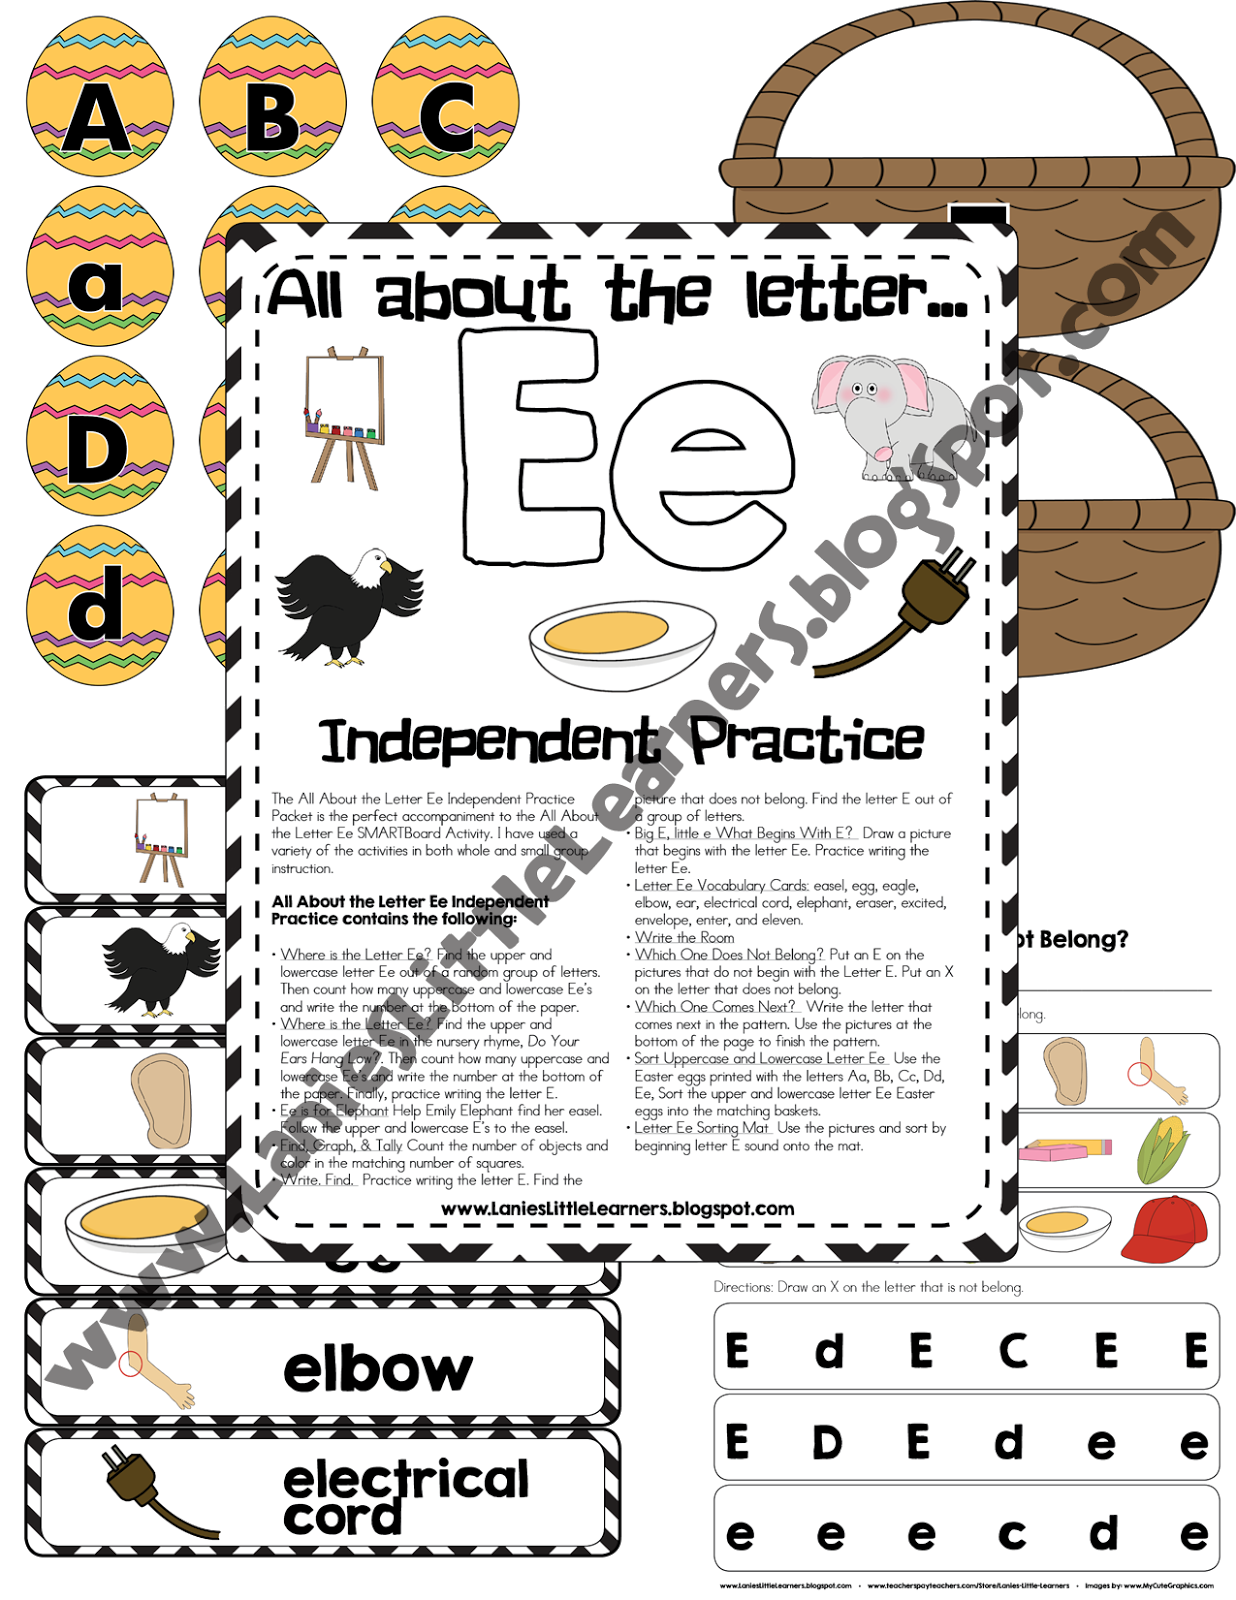 All About the Letter Ee Independent Practice